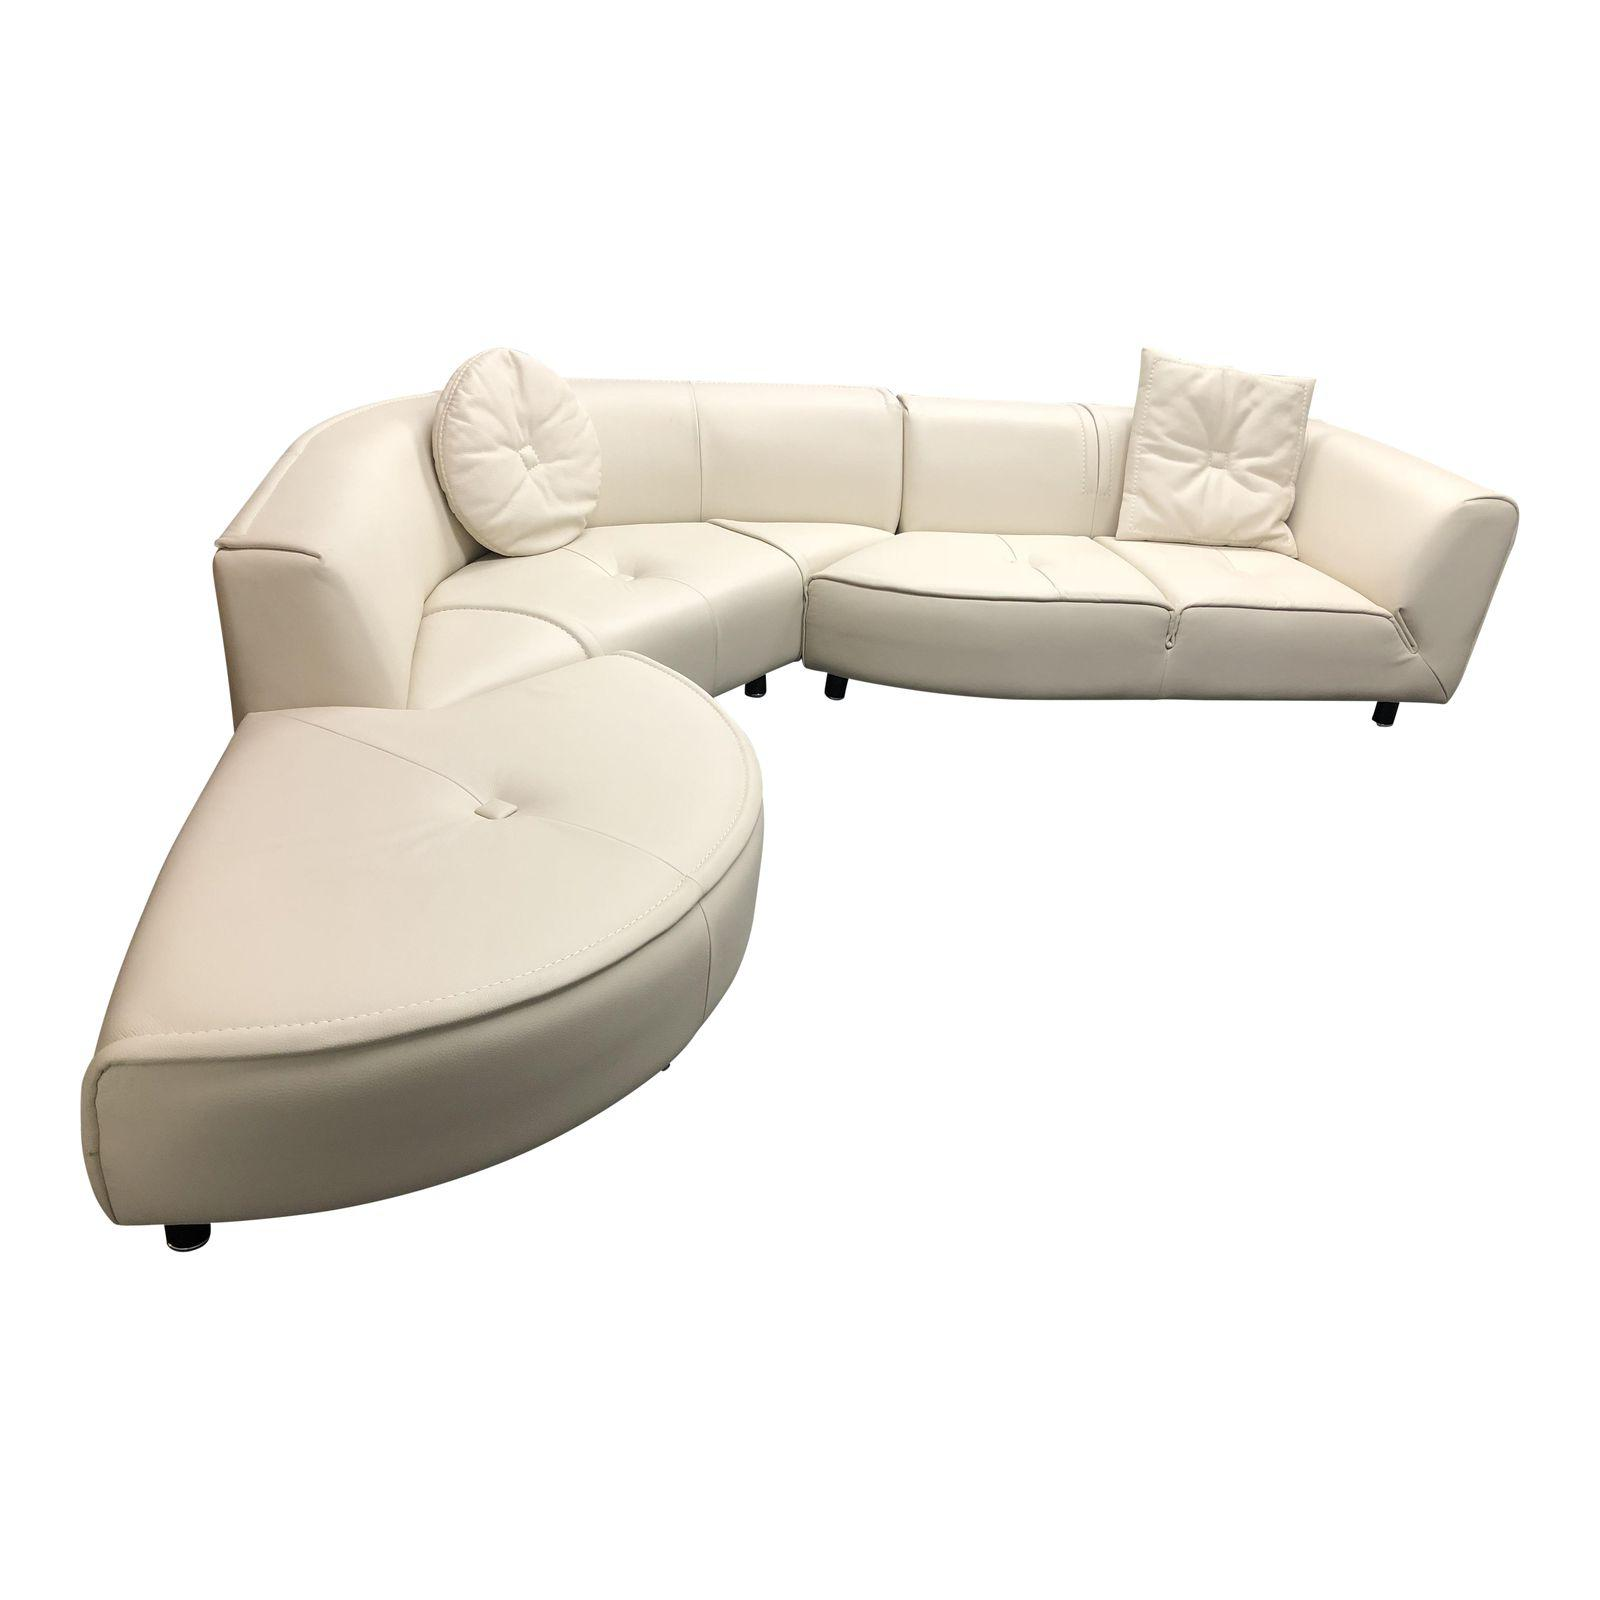 gamma sofas scs and chairs furniture planet three piece leather sectional